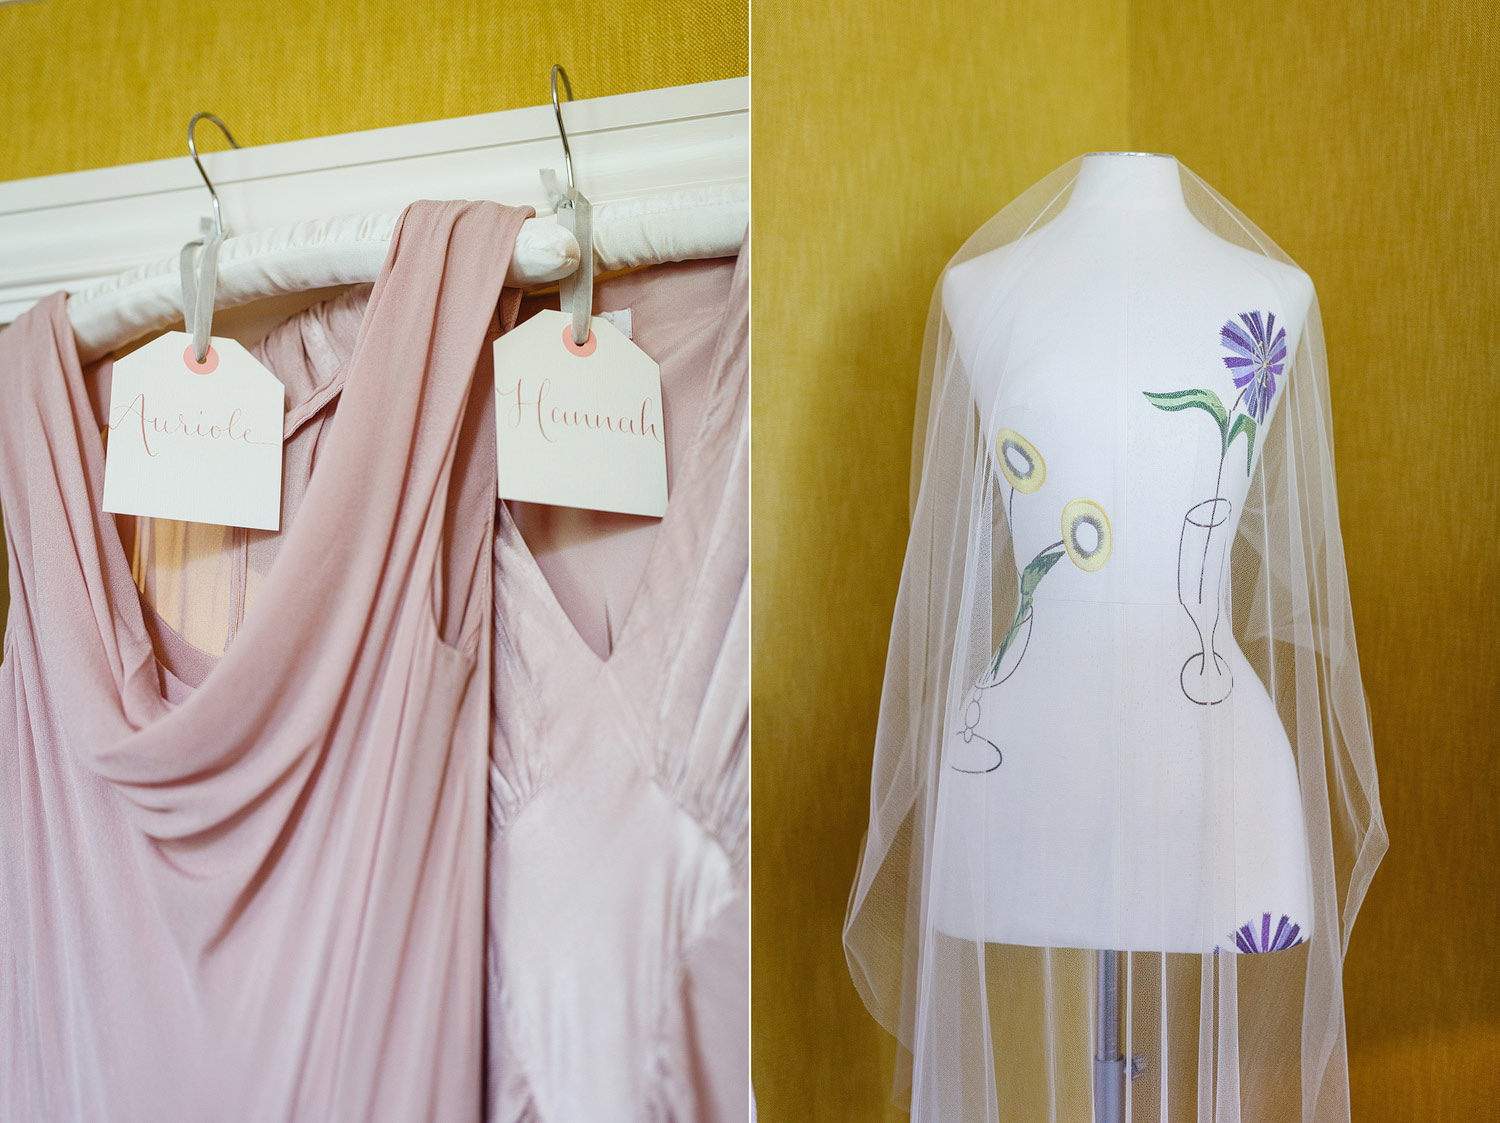 Bridesmaids dresses at Dorset Square Hotel - London wedding photographer